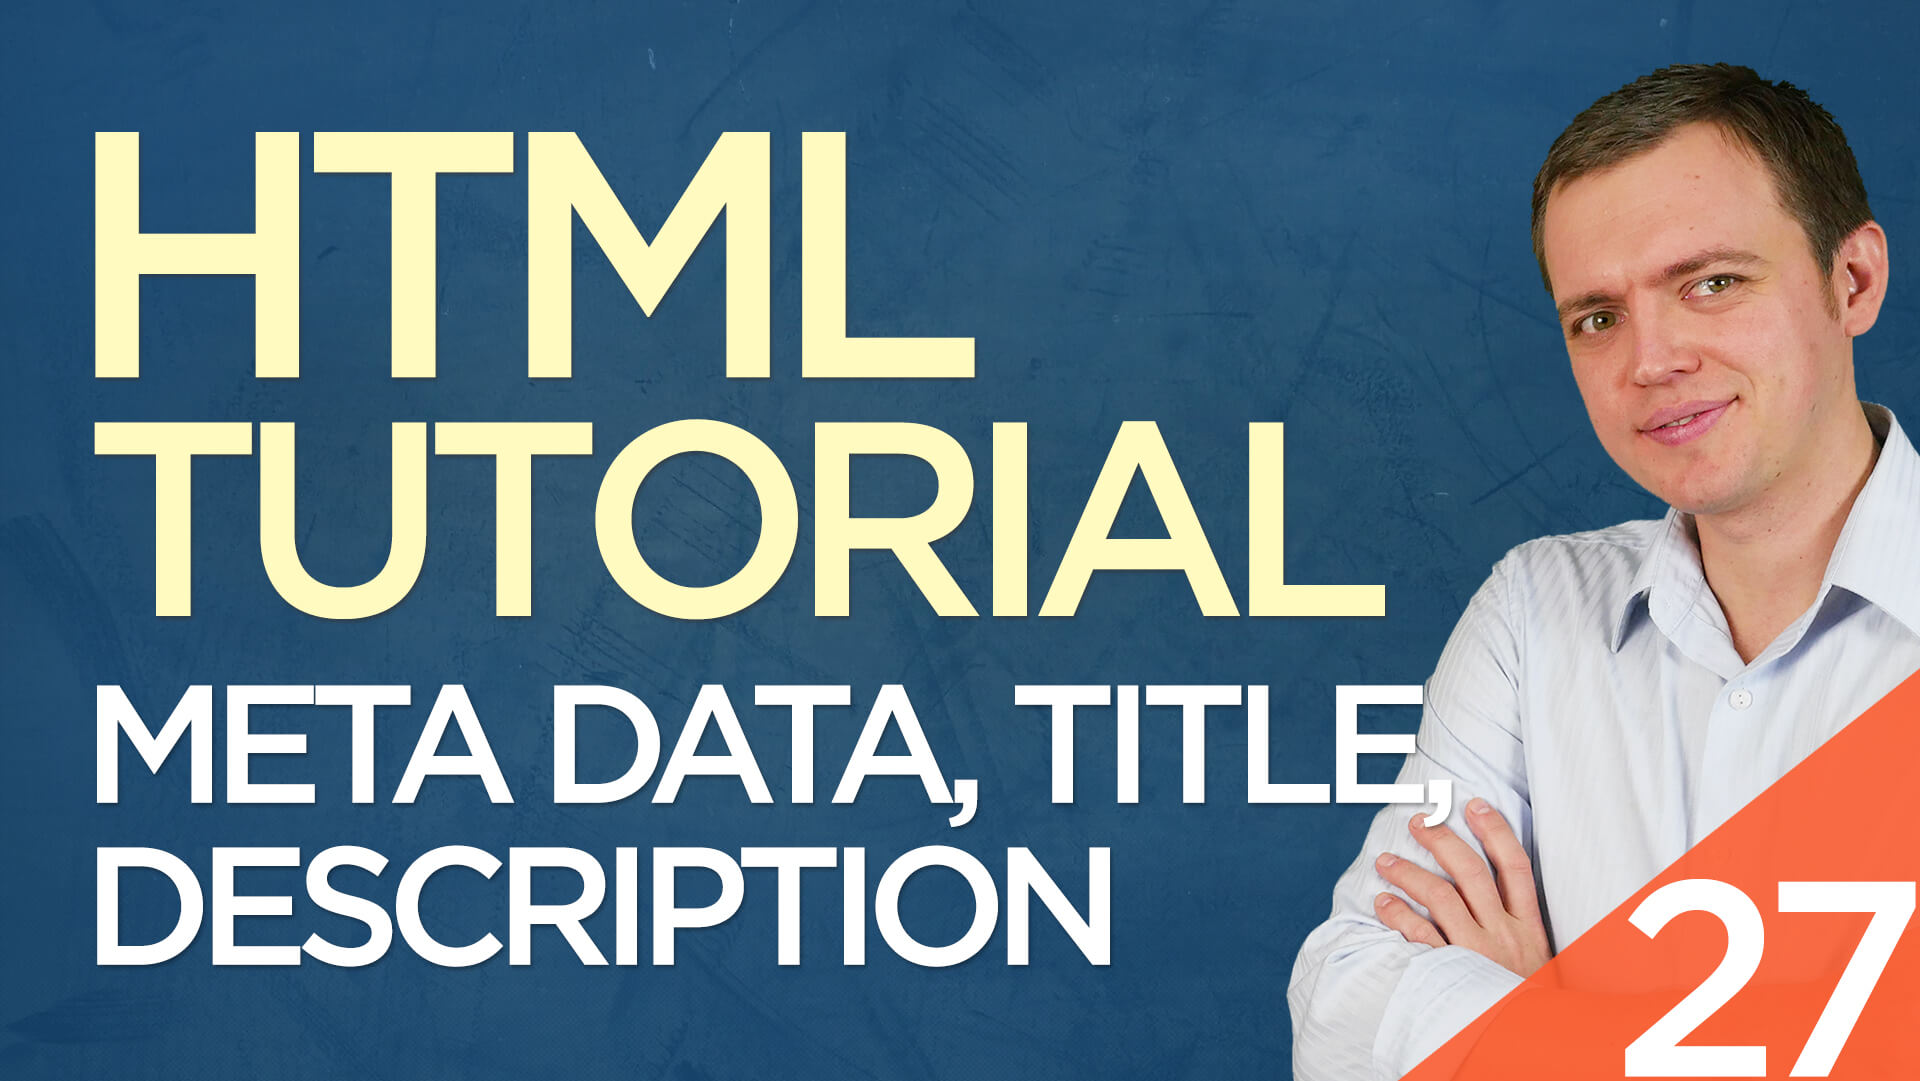 HTML Tutorial for Beginners: 27 Writing Meta Tags, Title, Description